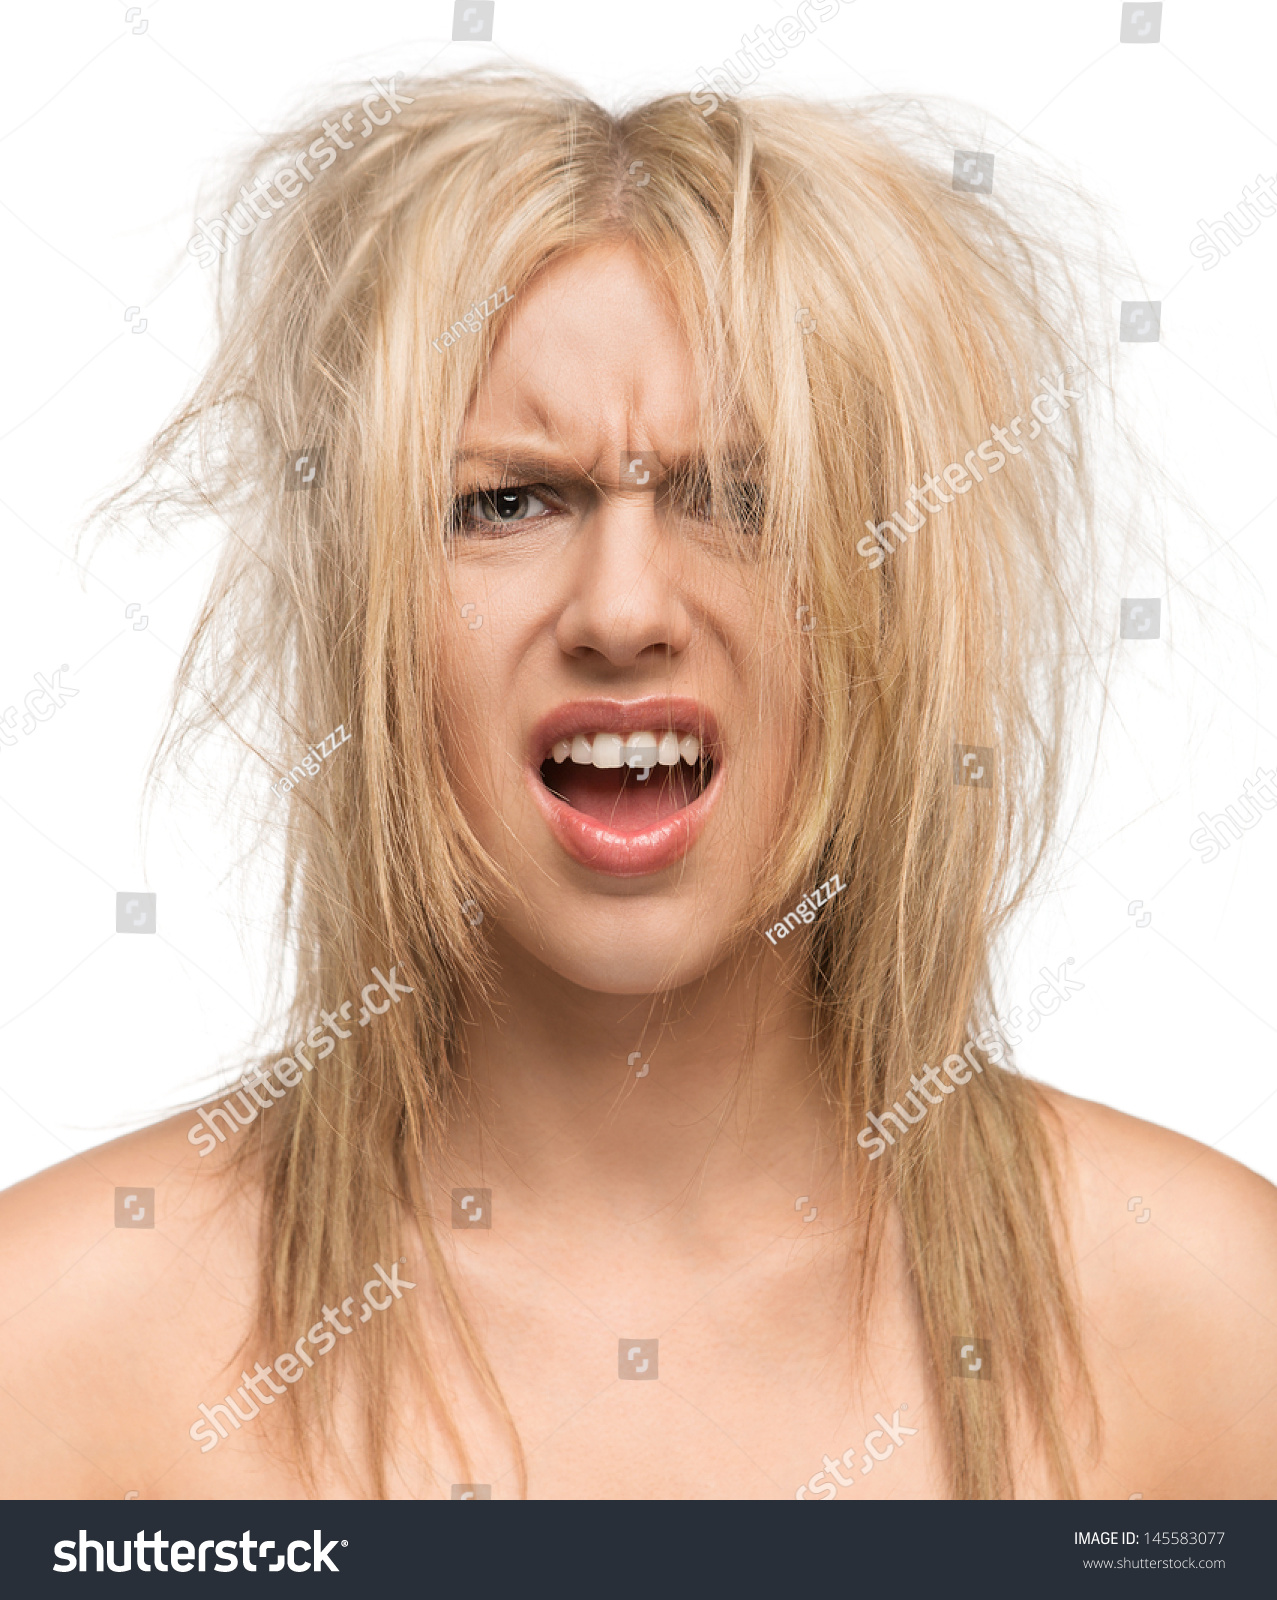 Bad Hair Day Portrait Beautiful Girl Stock Photo 145583077